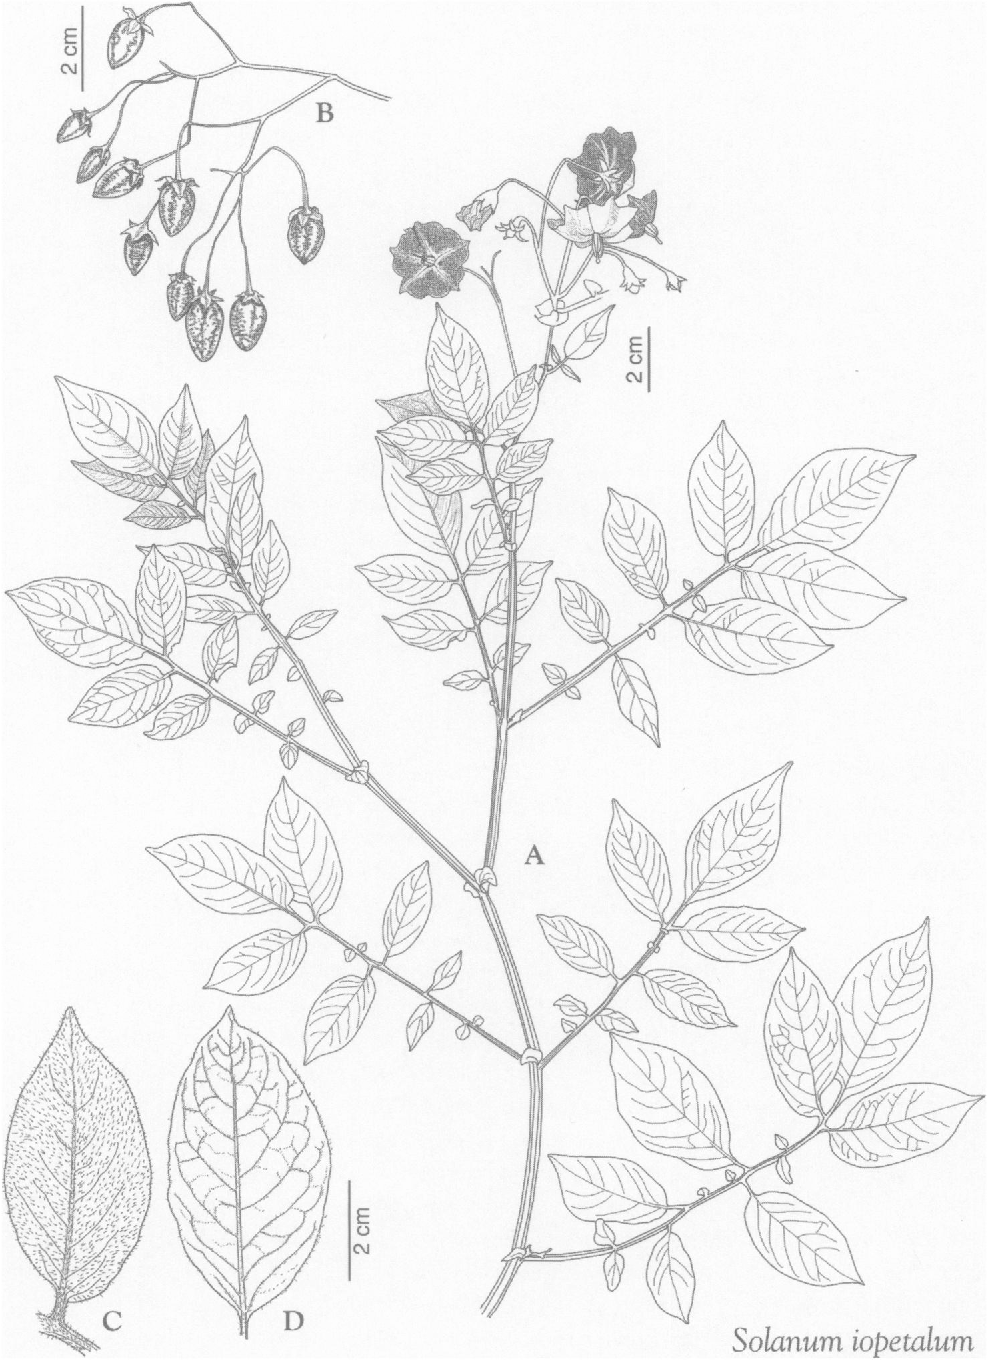 How Do You Draw Floral Diagram Of Solanaceae Family